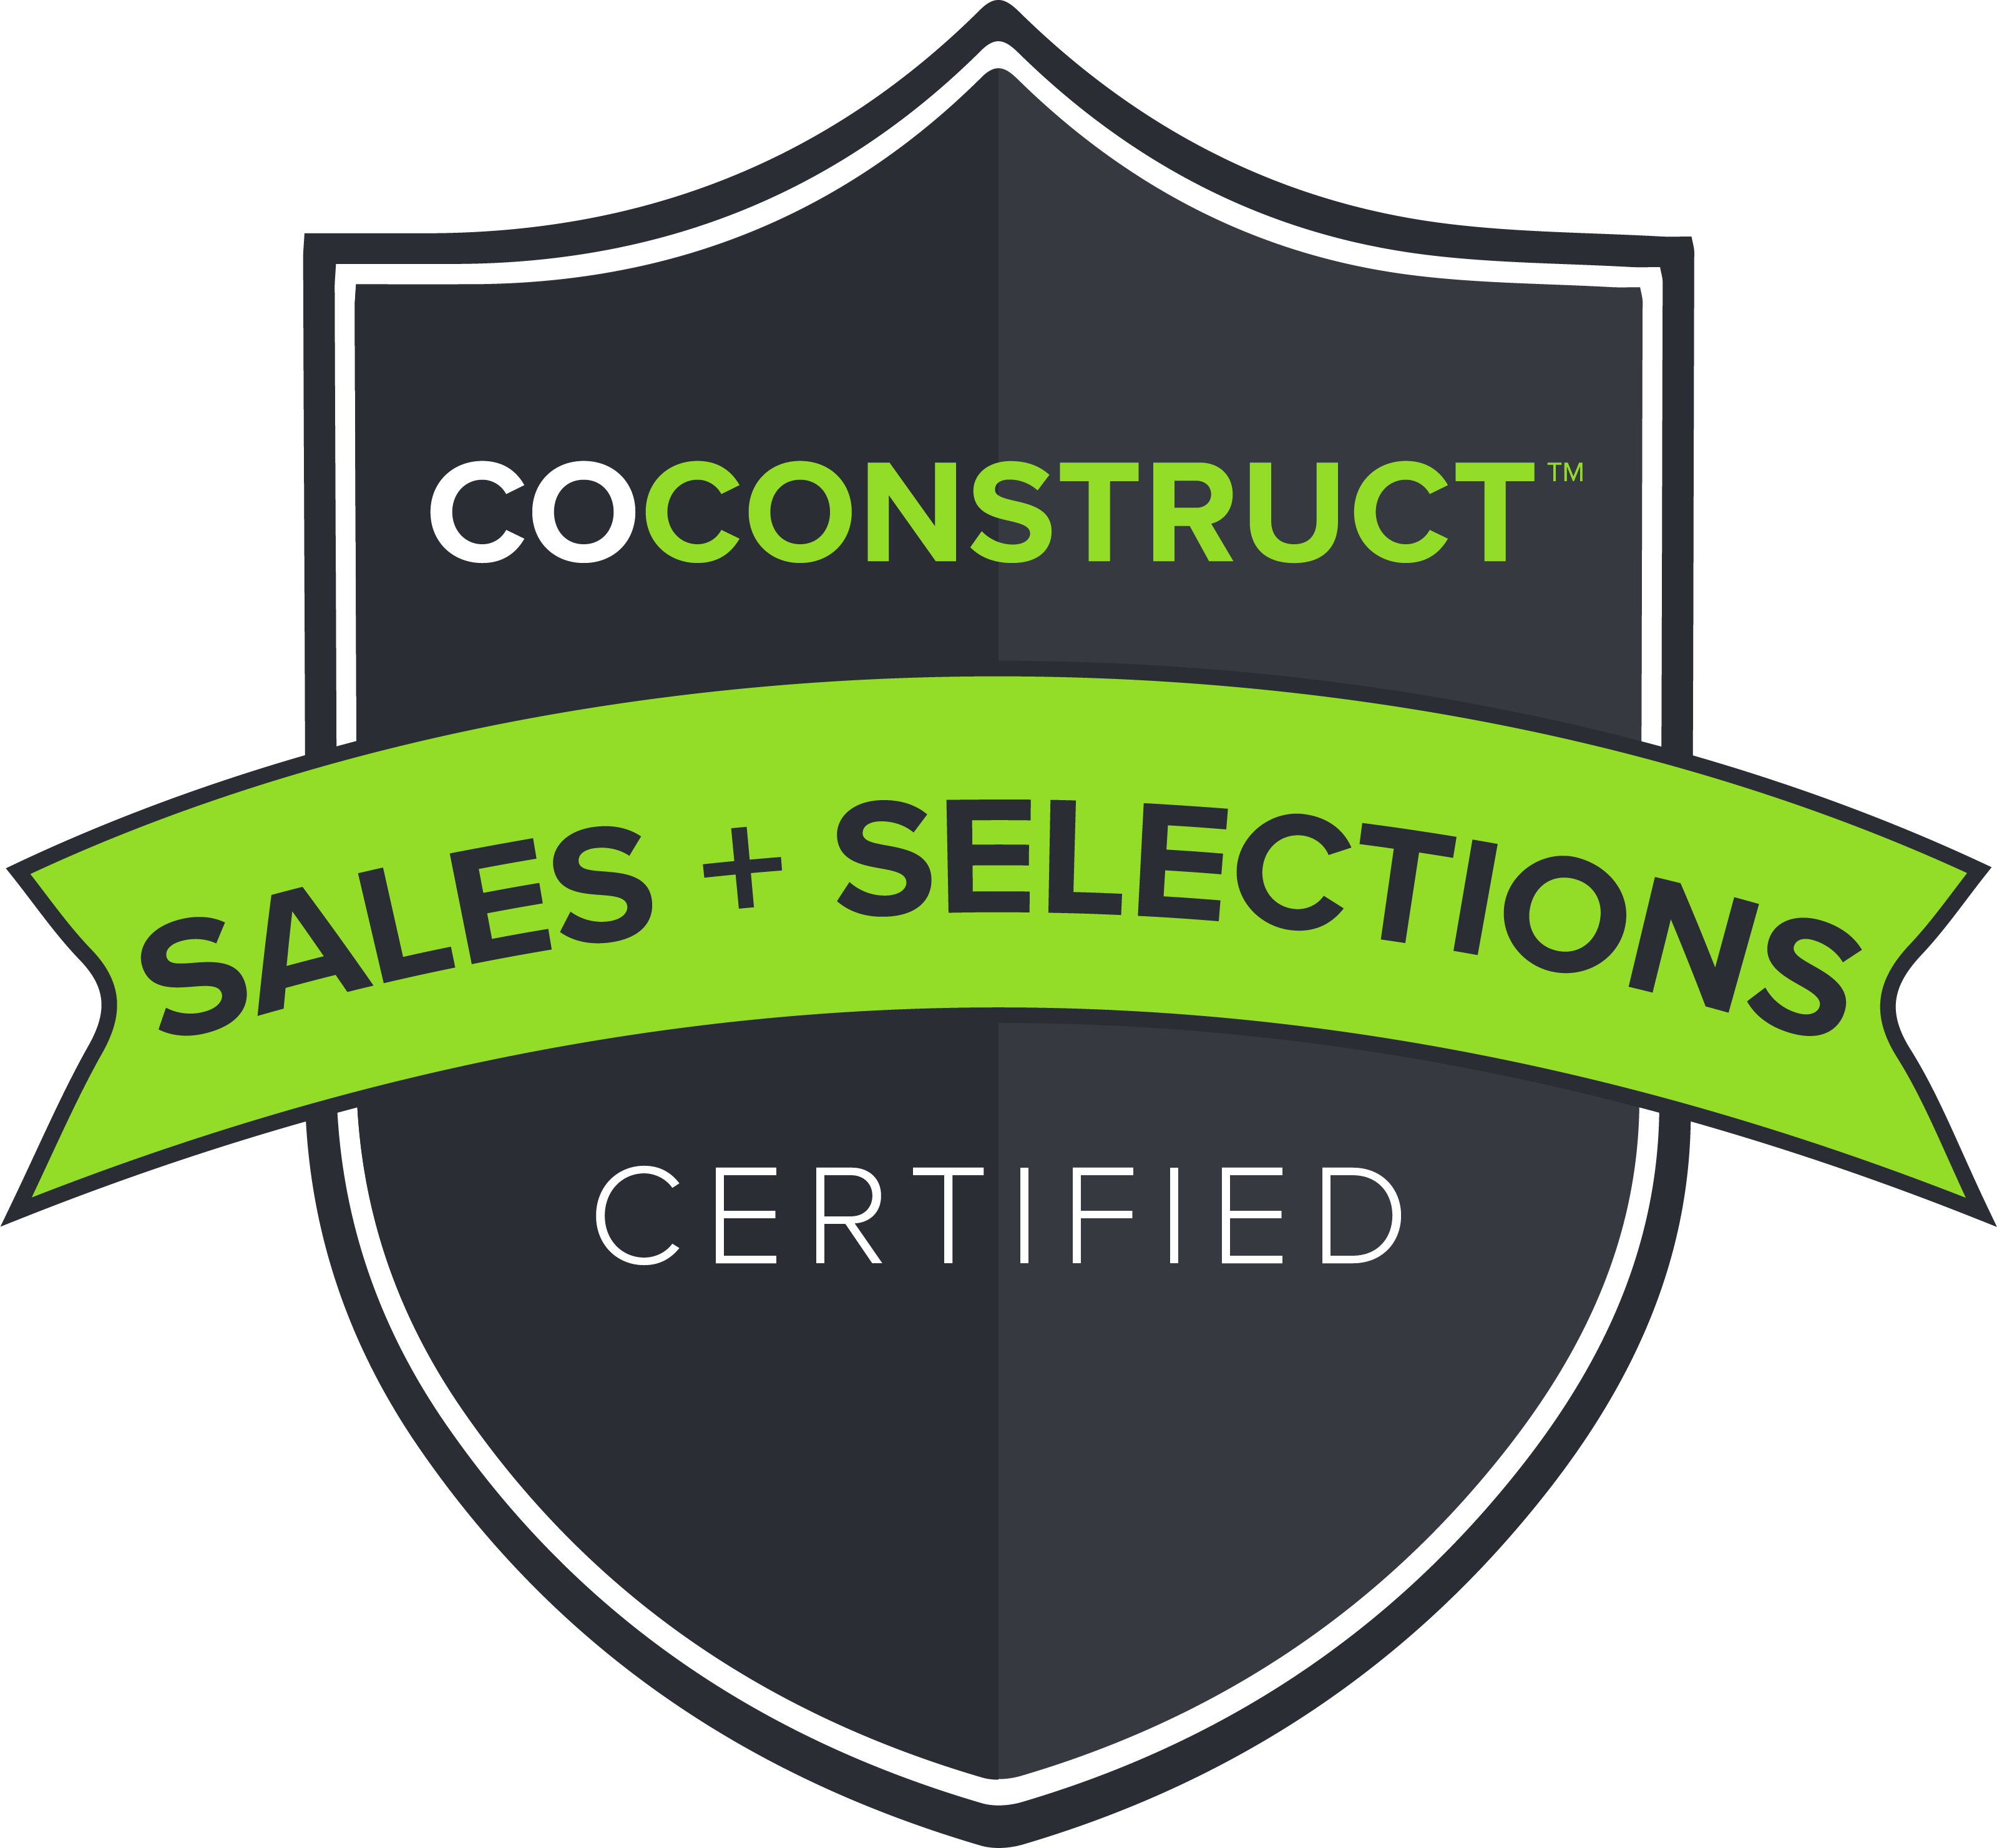 CoConstruct Selections + Sales Badge